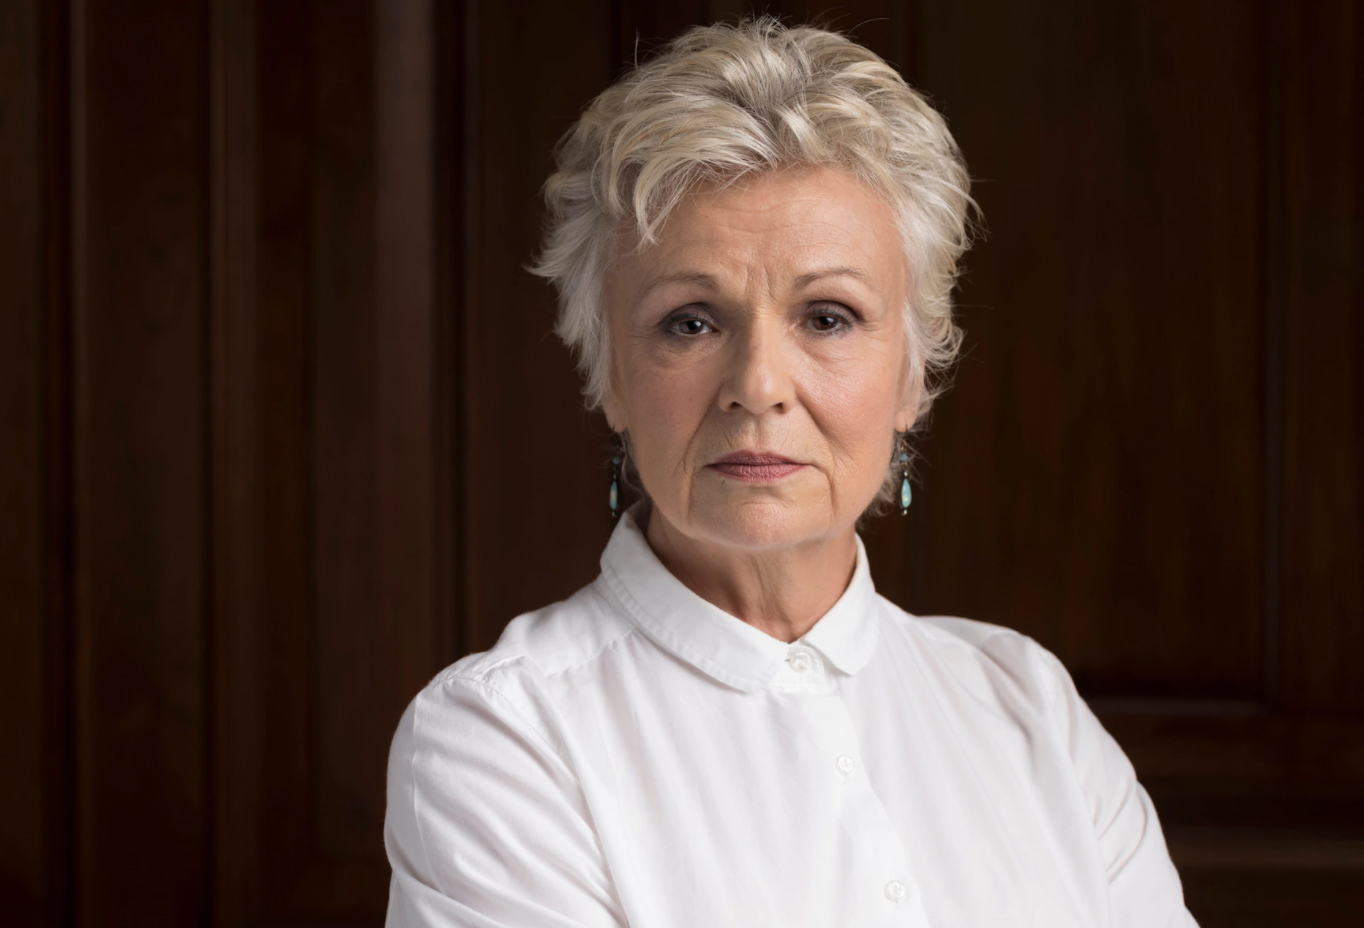 http://www.harry-potter.net.pl/images/articles/juliewalters3.jpg